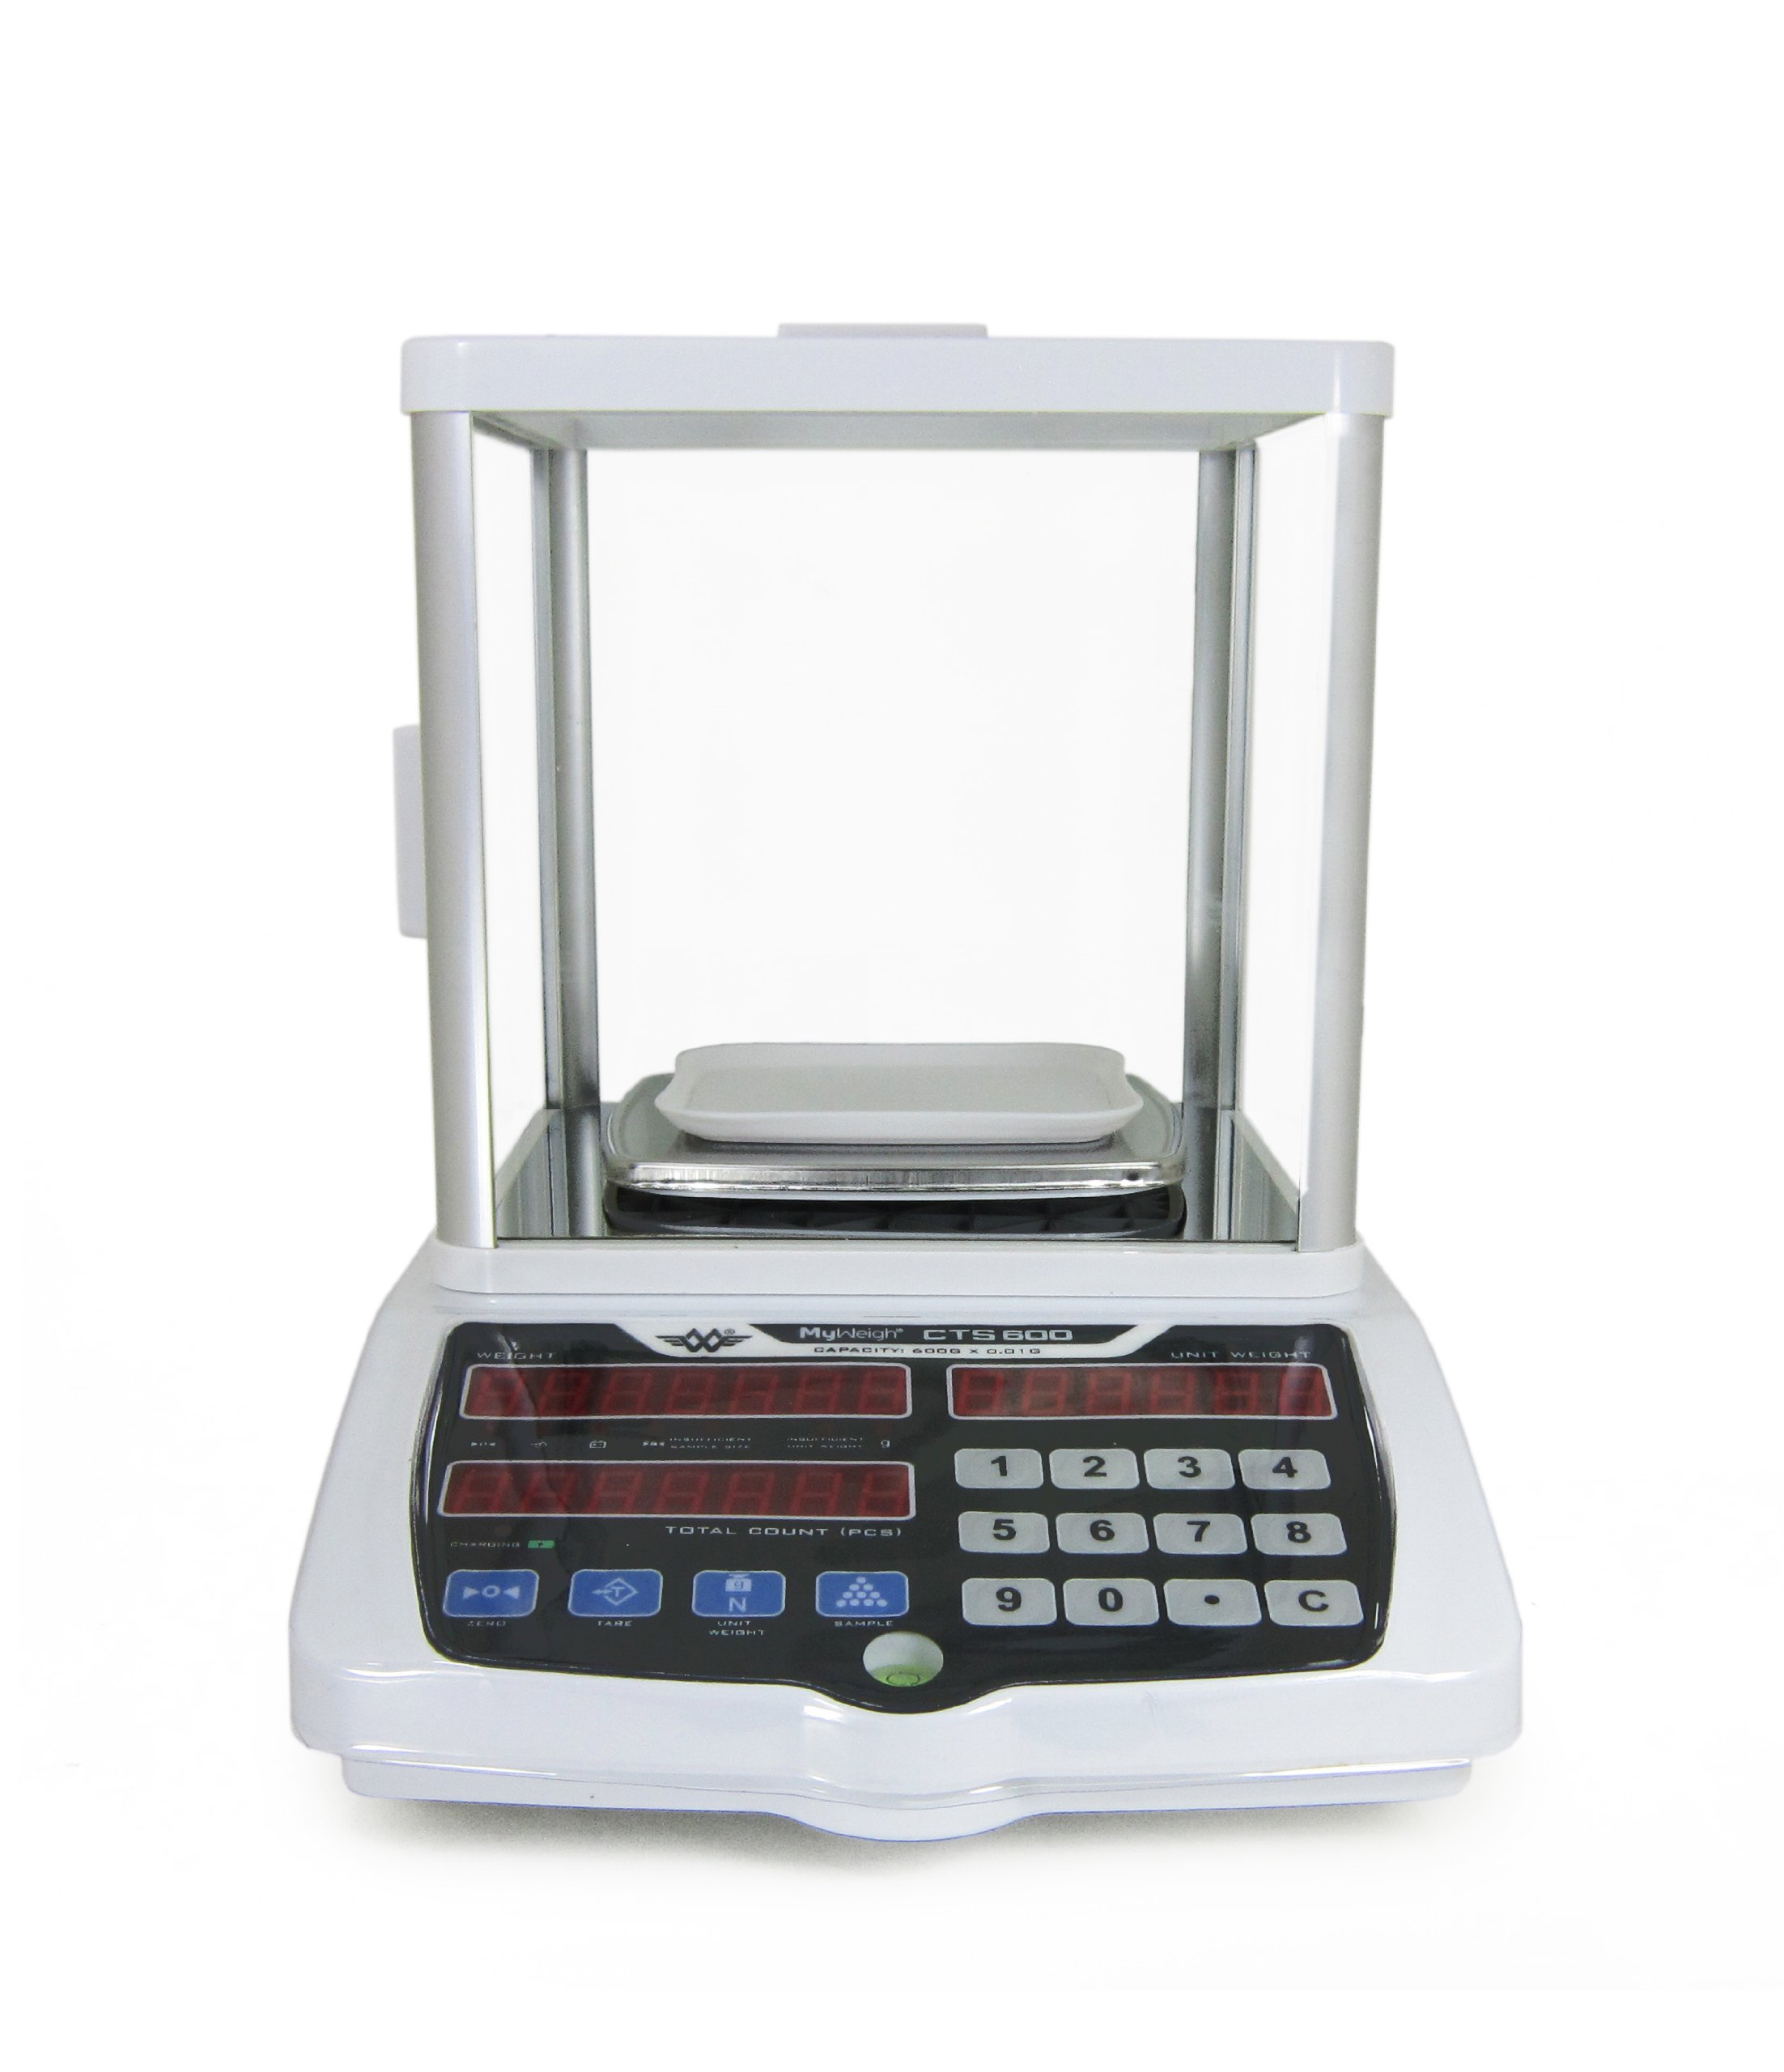 My Weigh CTS600 Precision Counting Scale